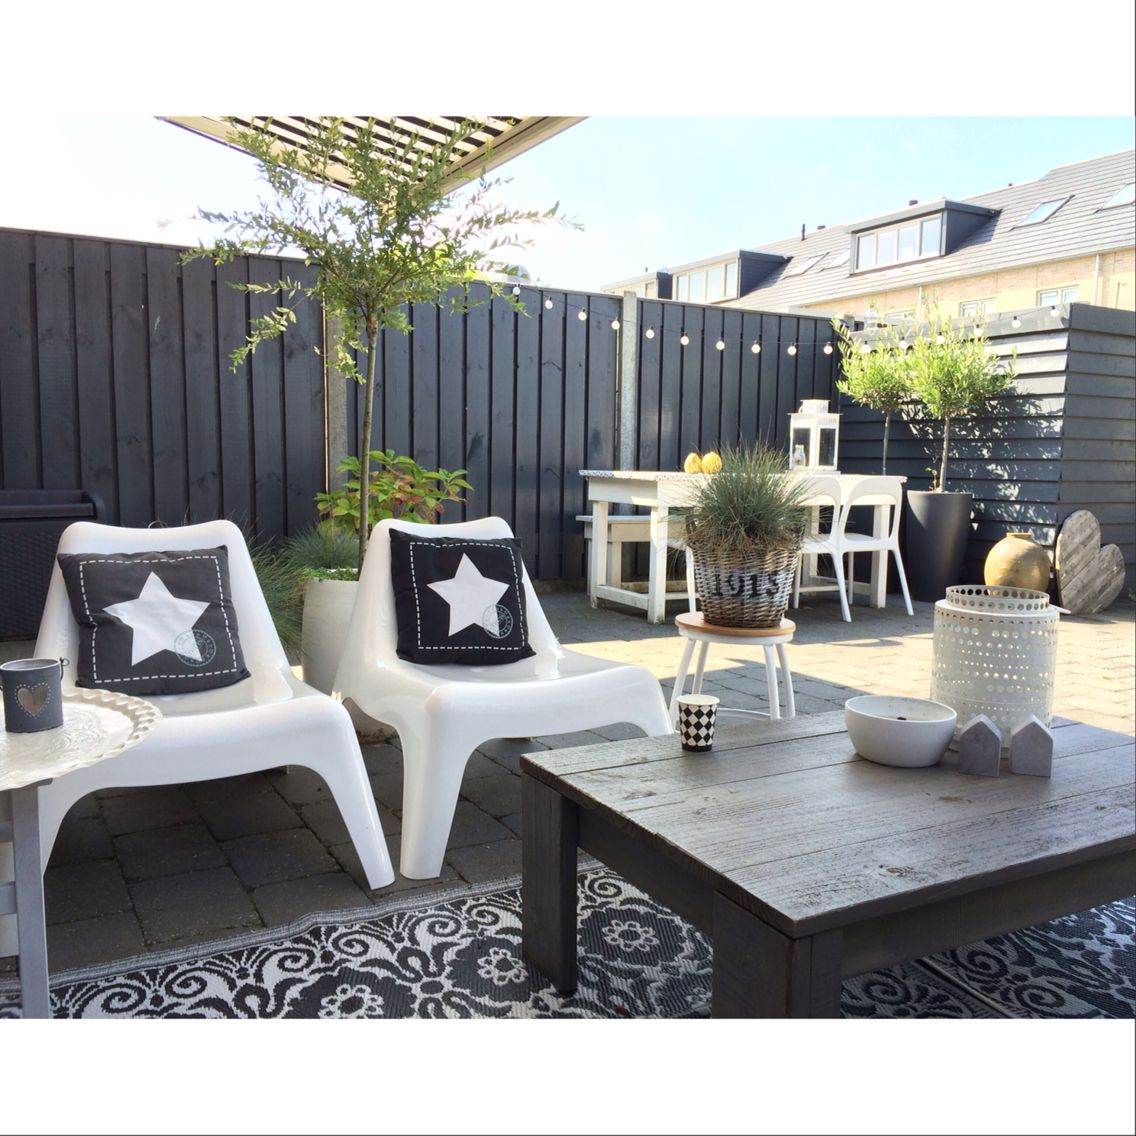 terrasse f r jugendliche traumhaus pinterest. Black Bedroom Furniture Sets. Home Design Ideas